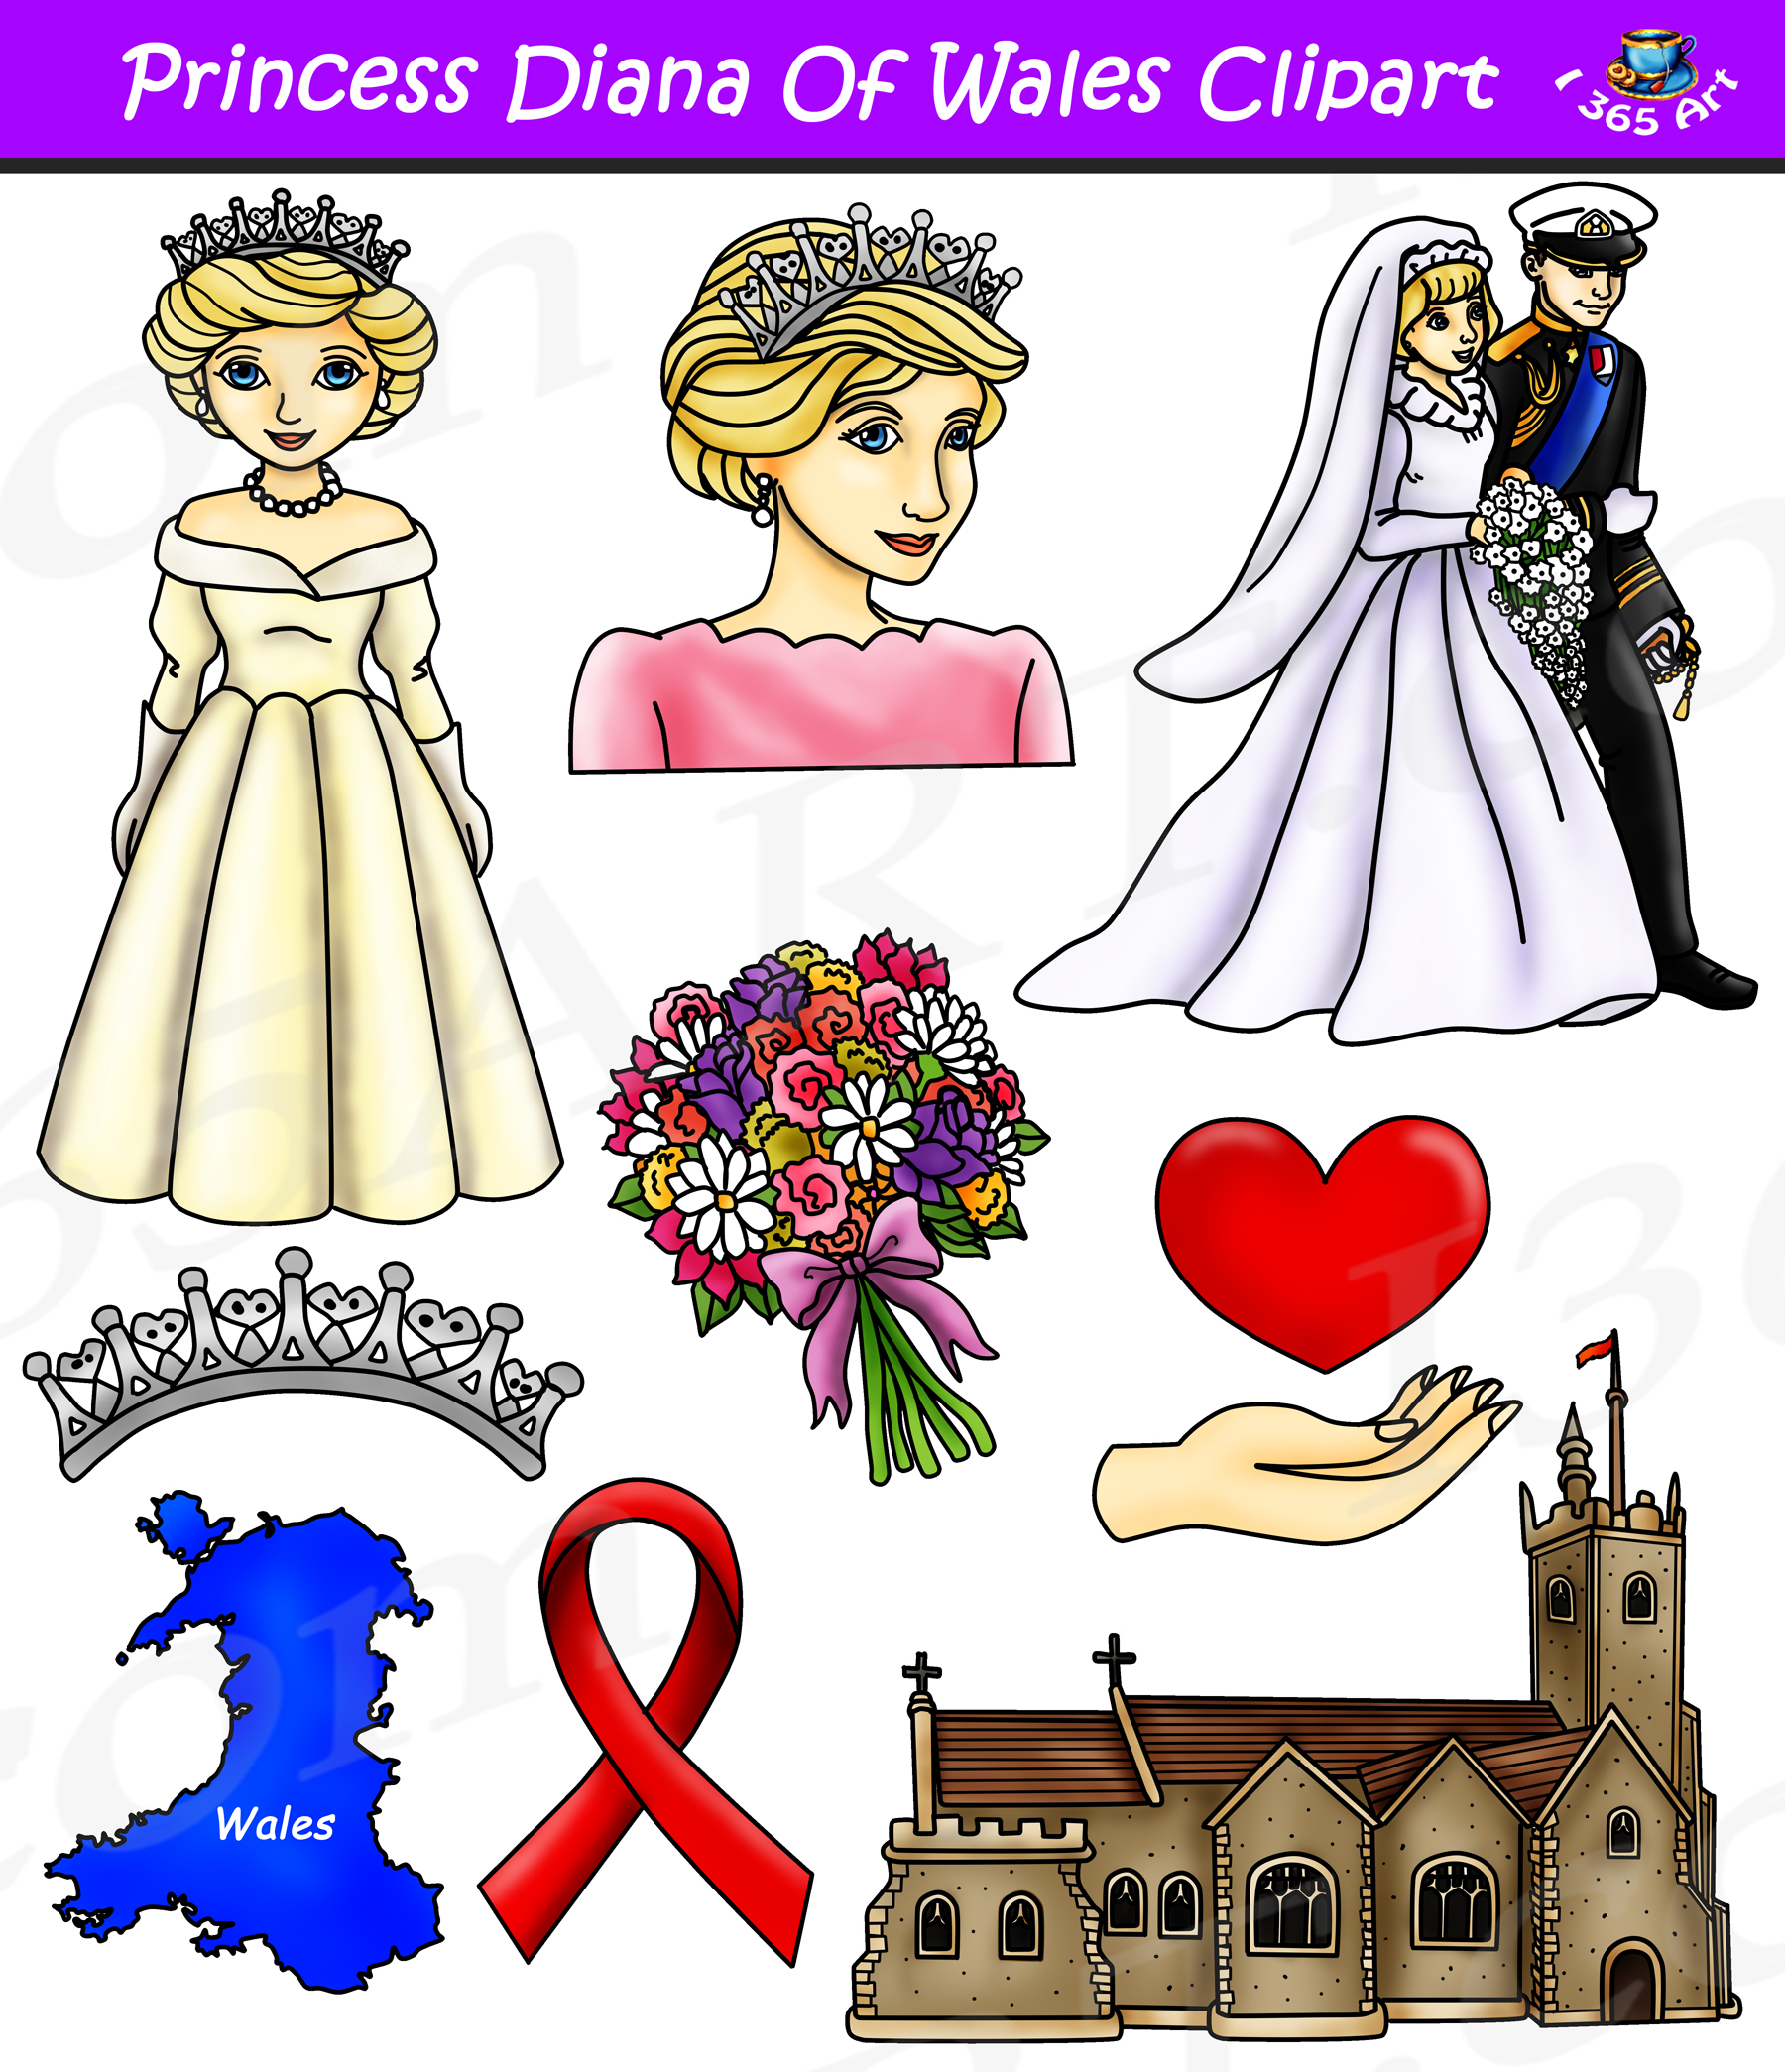 Princess diana clipart svg library download Princess Diana Clipart - Influential People Download svg library download